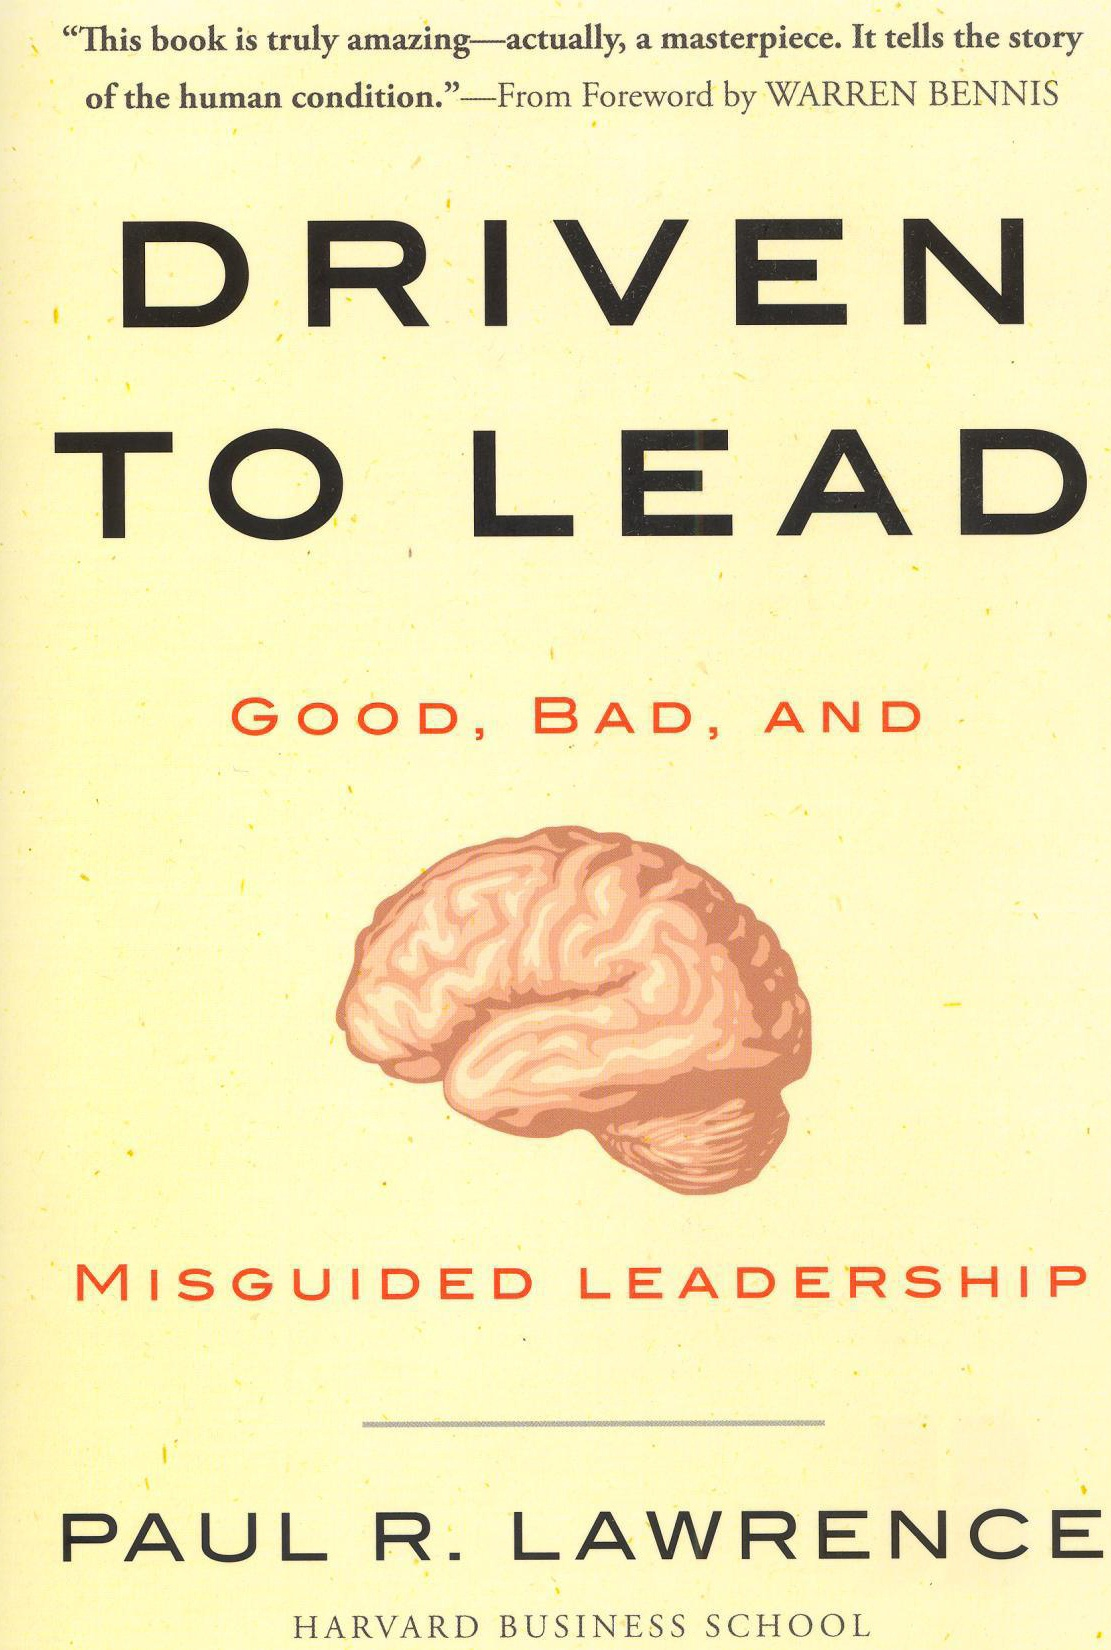 Driven to Lead: Good, bad and misguided leadership